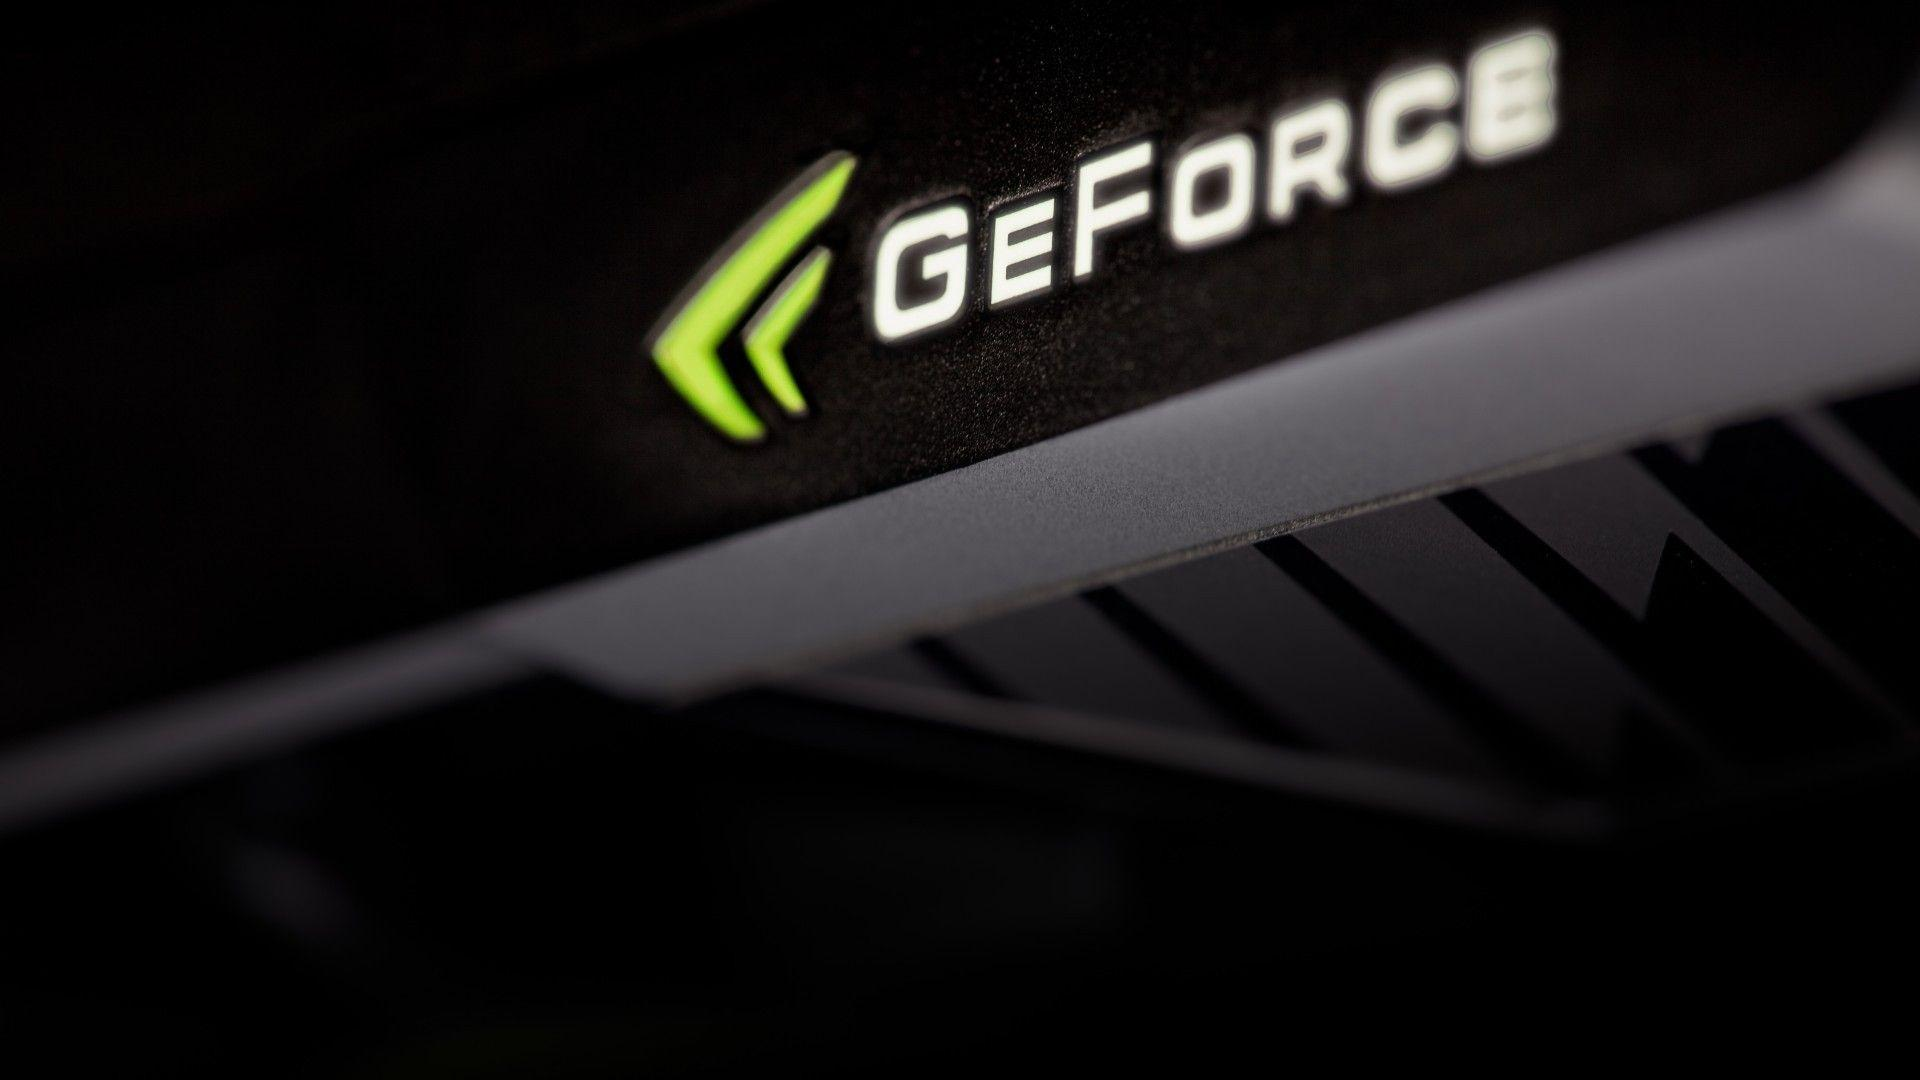 nvidia geforce experience how to join community